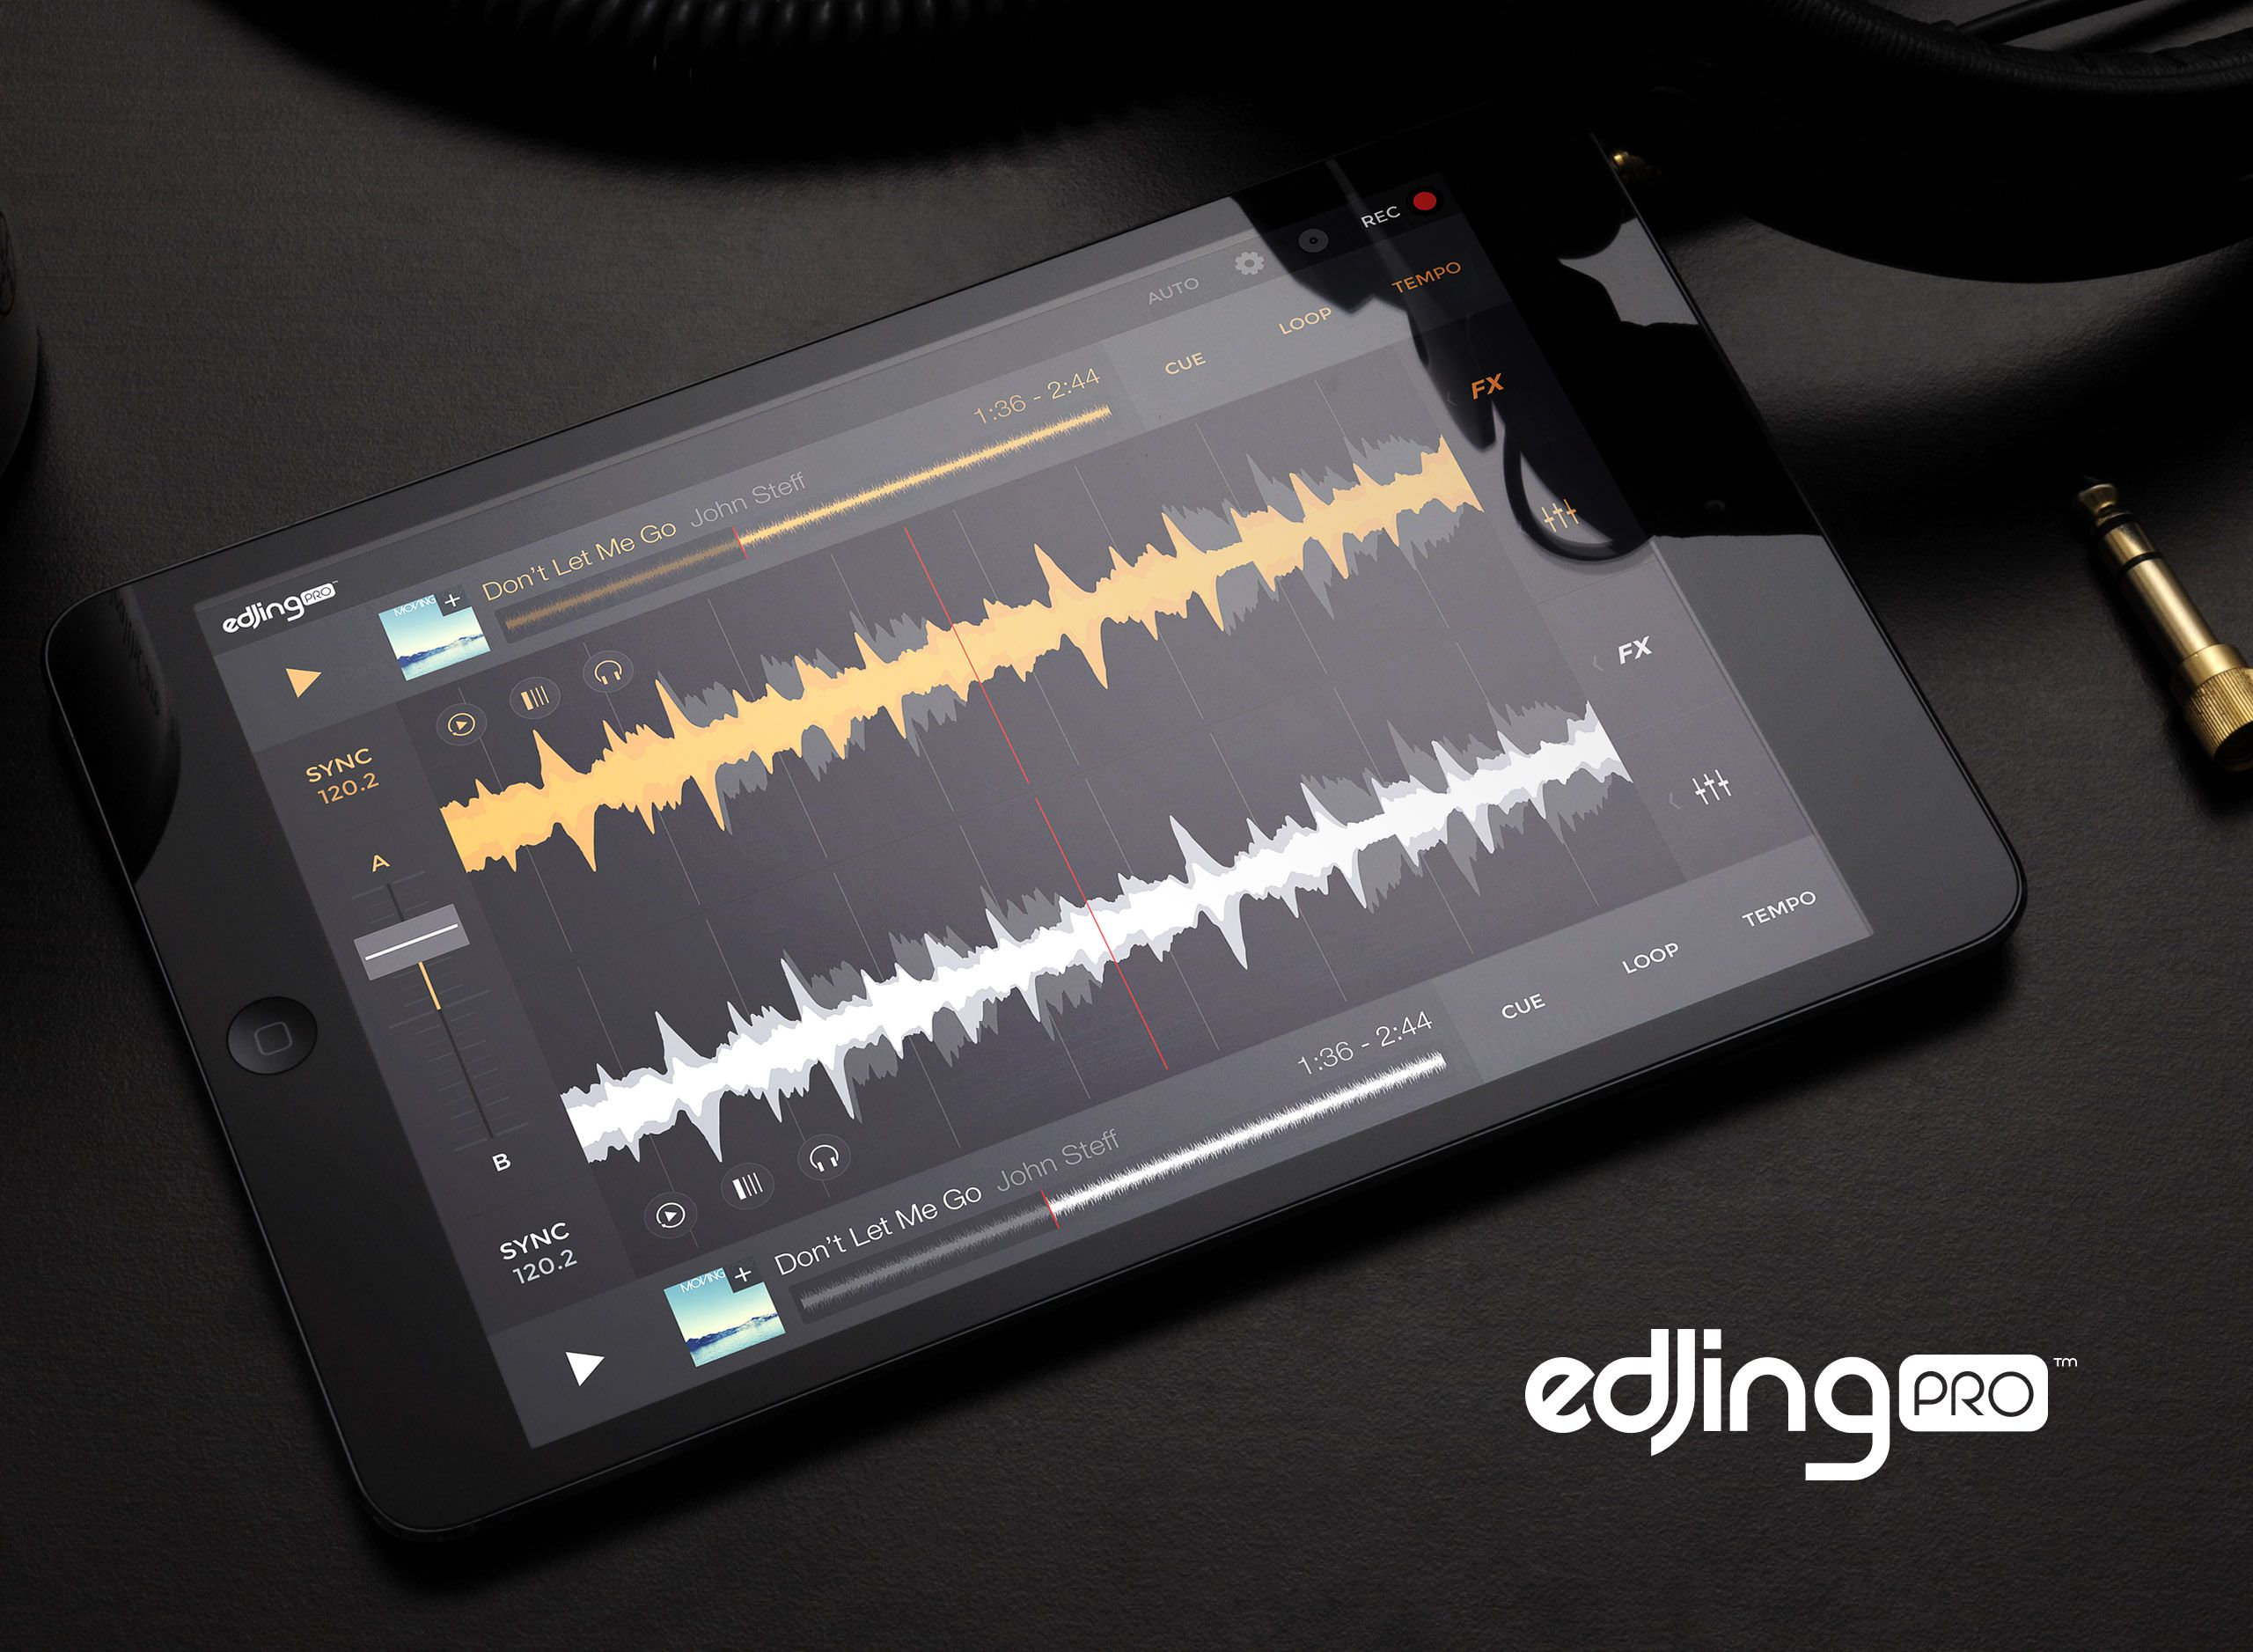 edjing Pro on iPad